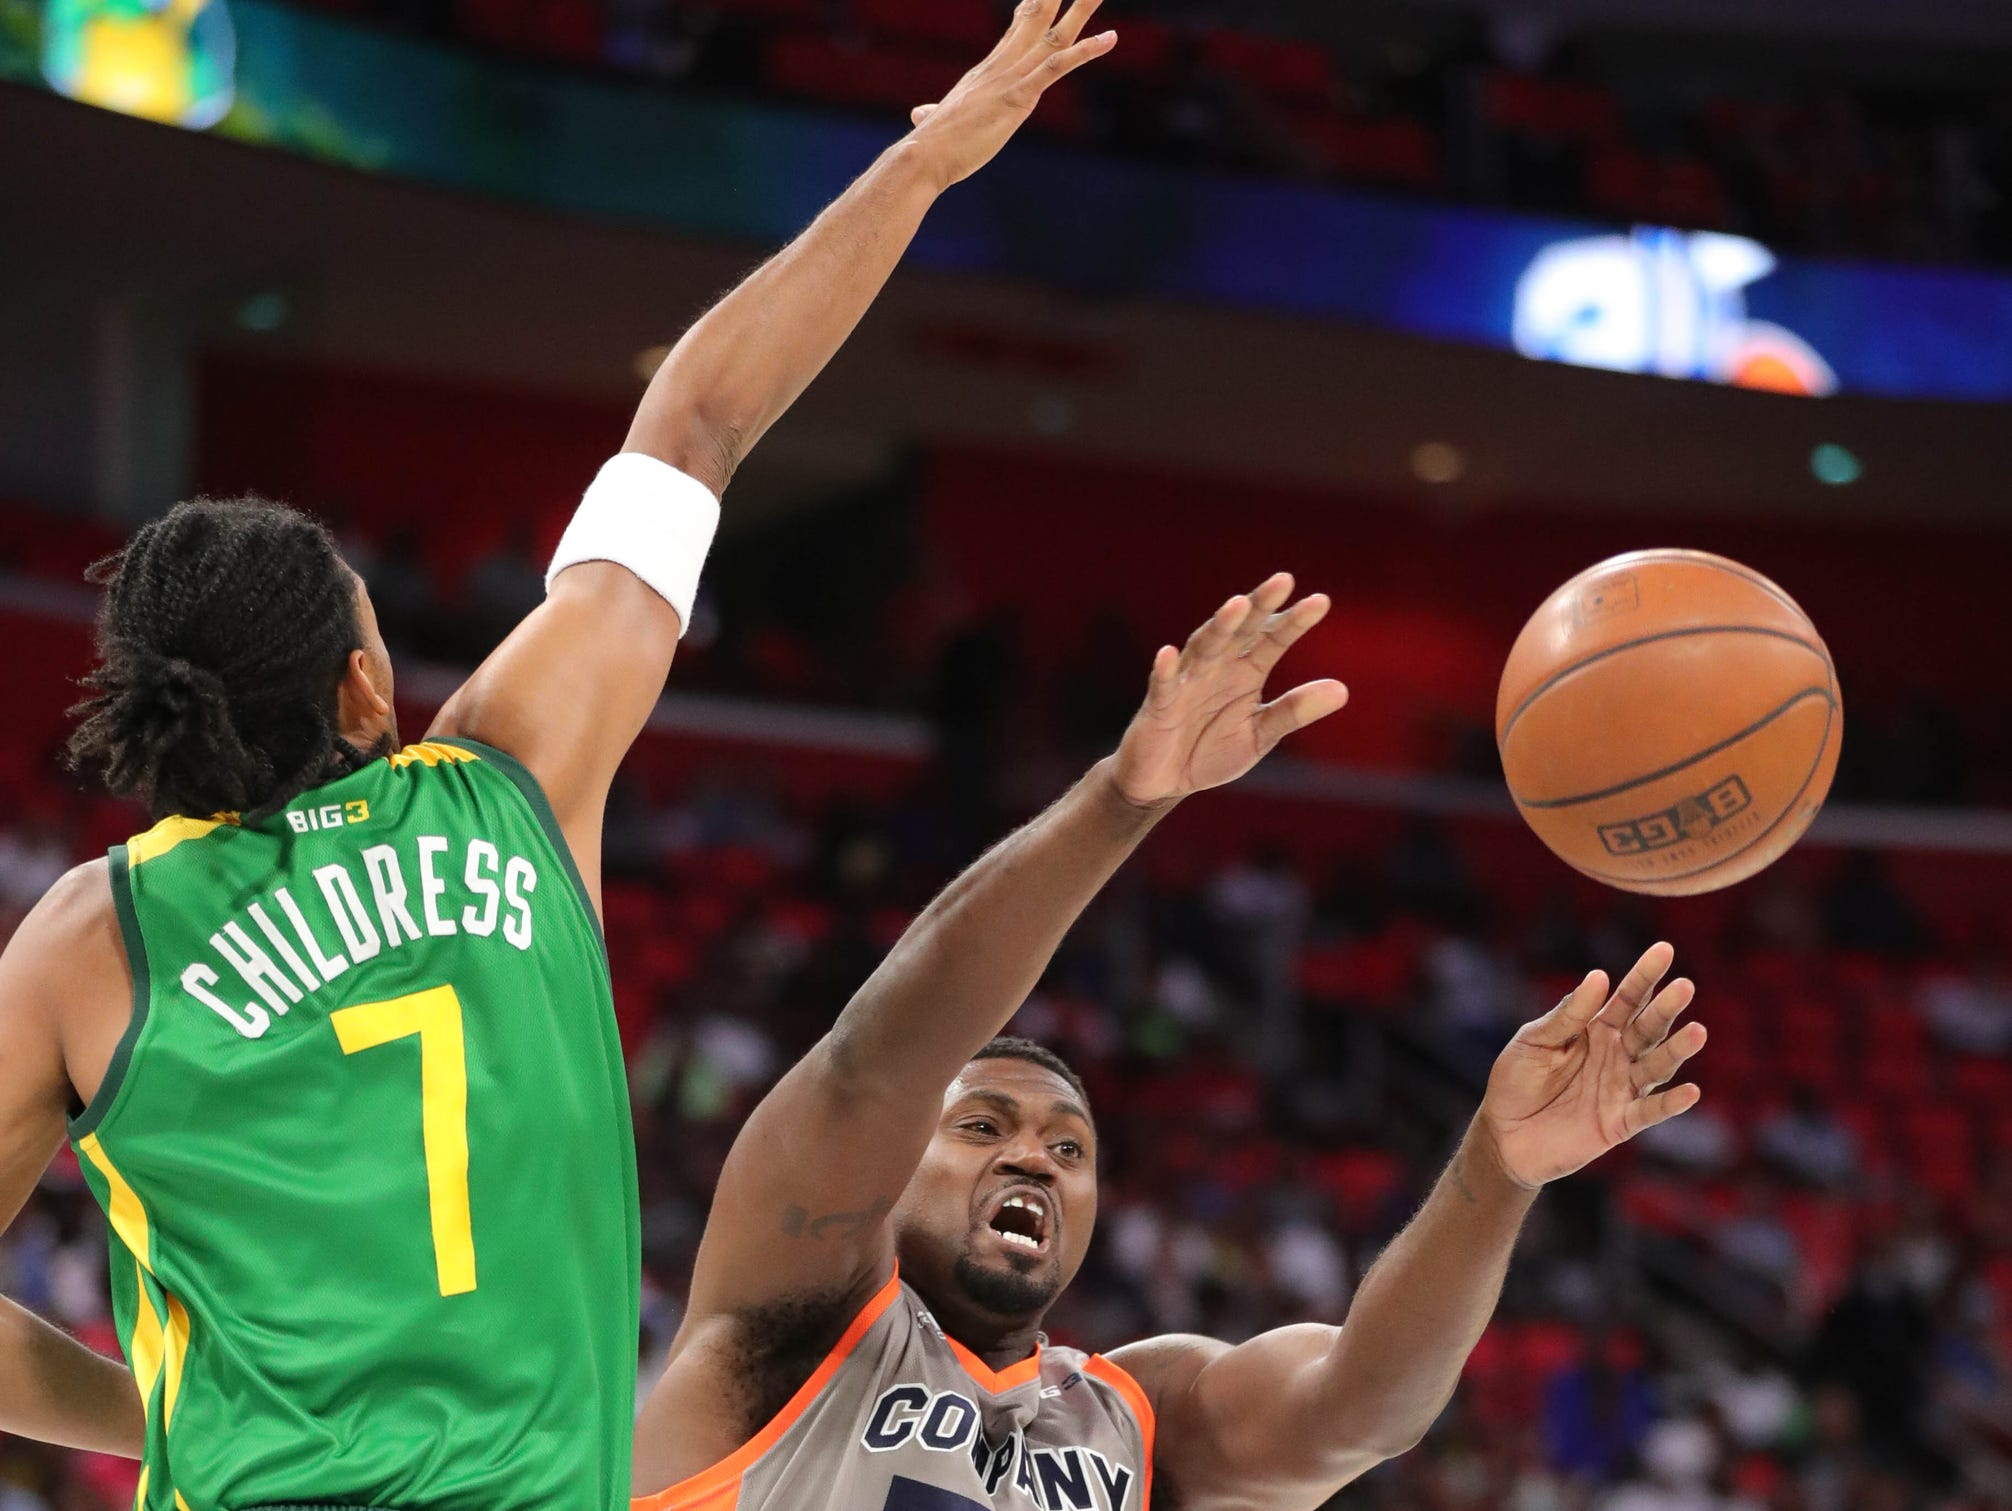 Ball Hogs Josh Childress defends against 3s Company's Jason Maxiell during BIG3 action on Friday, July 13, 2018 at Little Caesars Arena in Detroit.